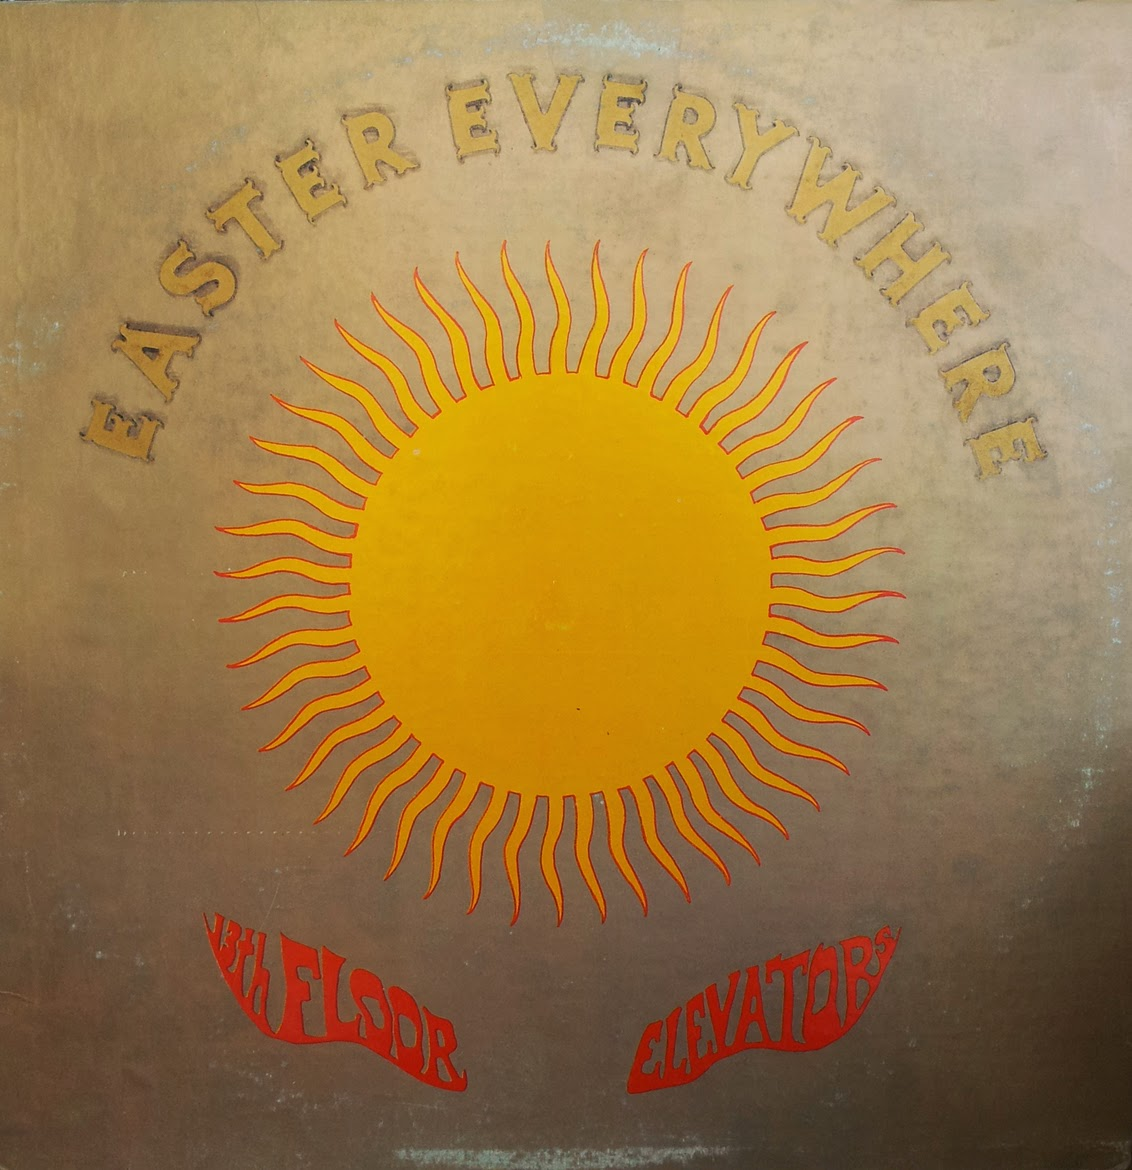 13 1 3 the real 500 best albums of all time part 30 of for 13th floor elevators easter everywhere